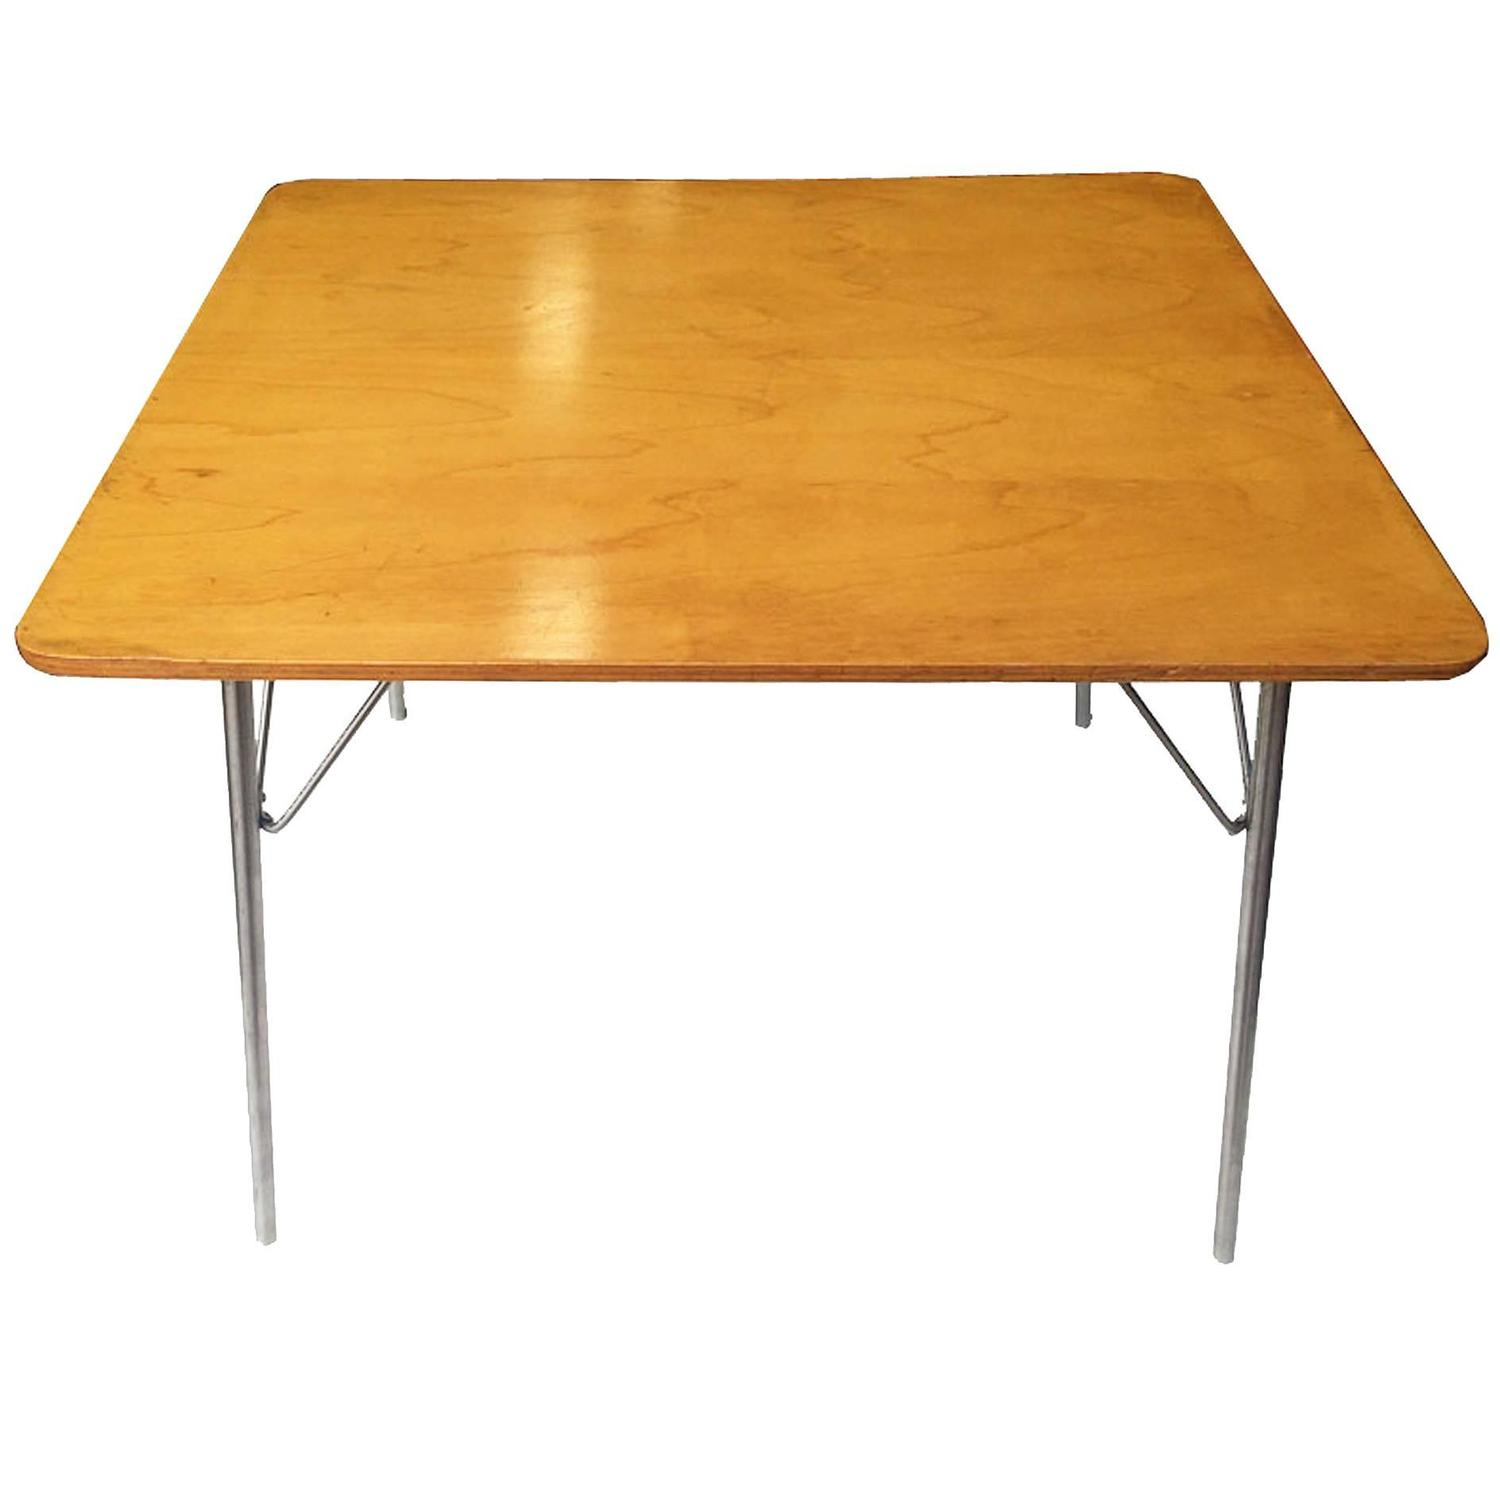 Rare Herman Miller Eames IT 1 Incidental Table For Sale at 1stdibs